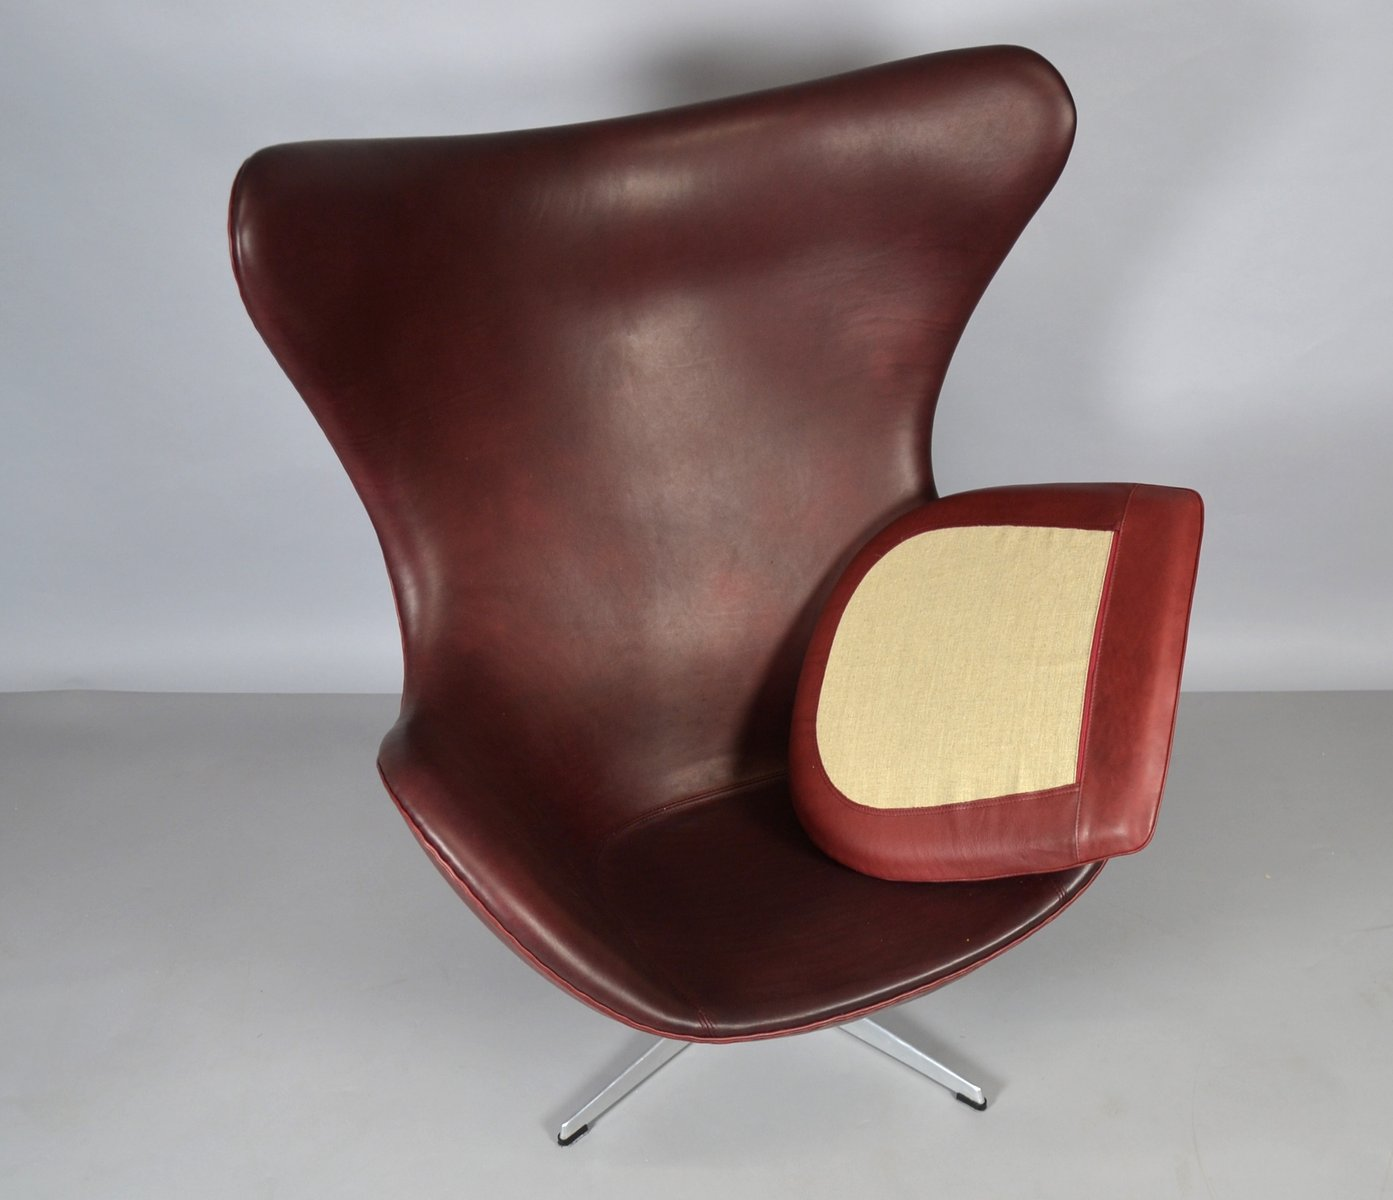 leather egg chair by arne jacobsen for fritz hansen 1965 for sale at pamono. Black Bedroom Furniture Sets. Home Design Ideas